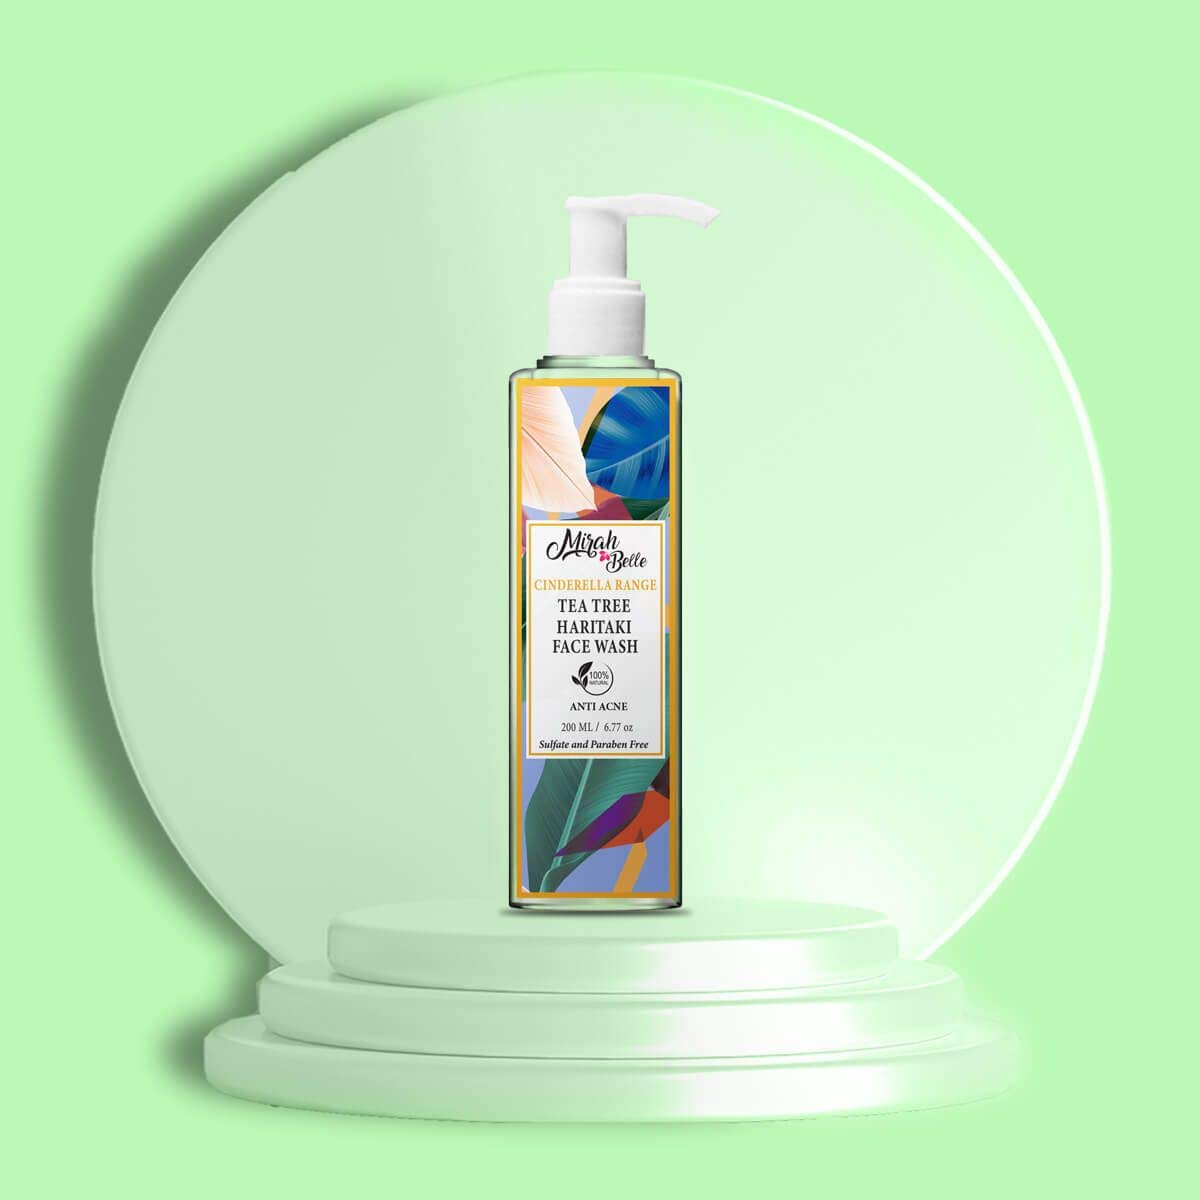 Mirah Belle - Tea Tree, Haritaki - Natural Face Wash - Anti Acne, Heals Blemishes, Lightens Scars - Vegan, Cruelty Free - Sulfate and Paraben Free, 200 ml